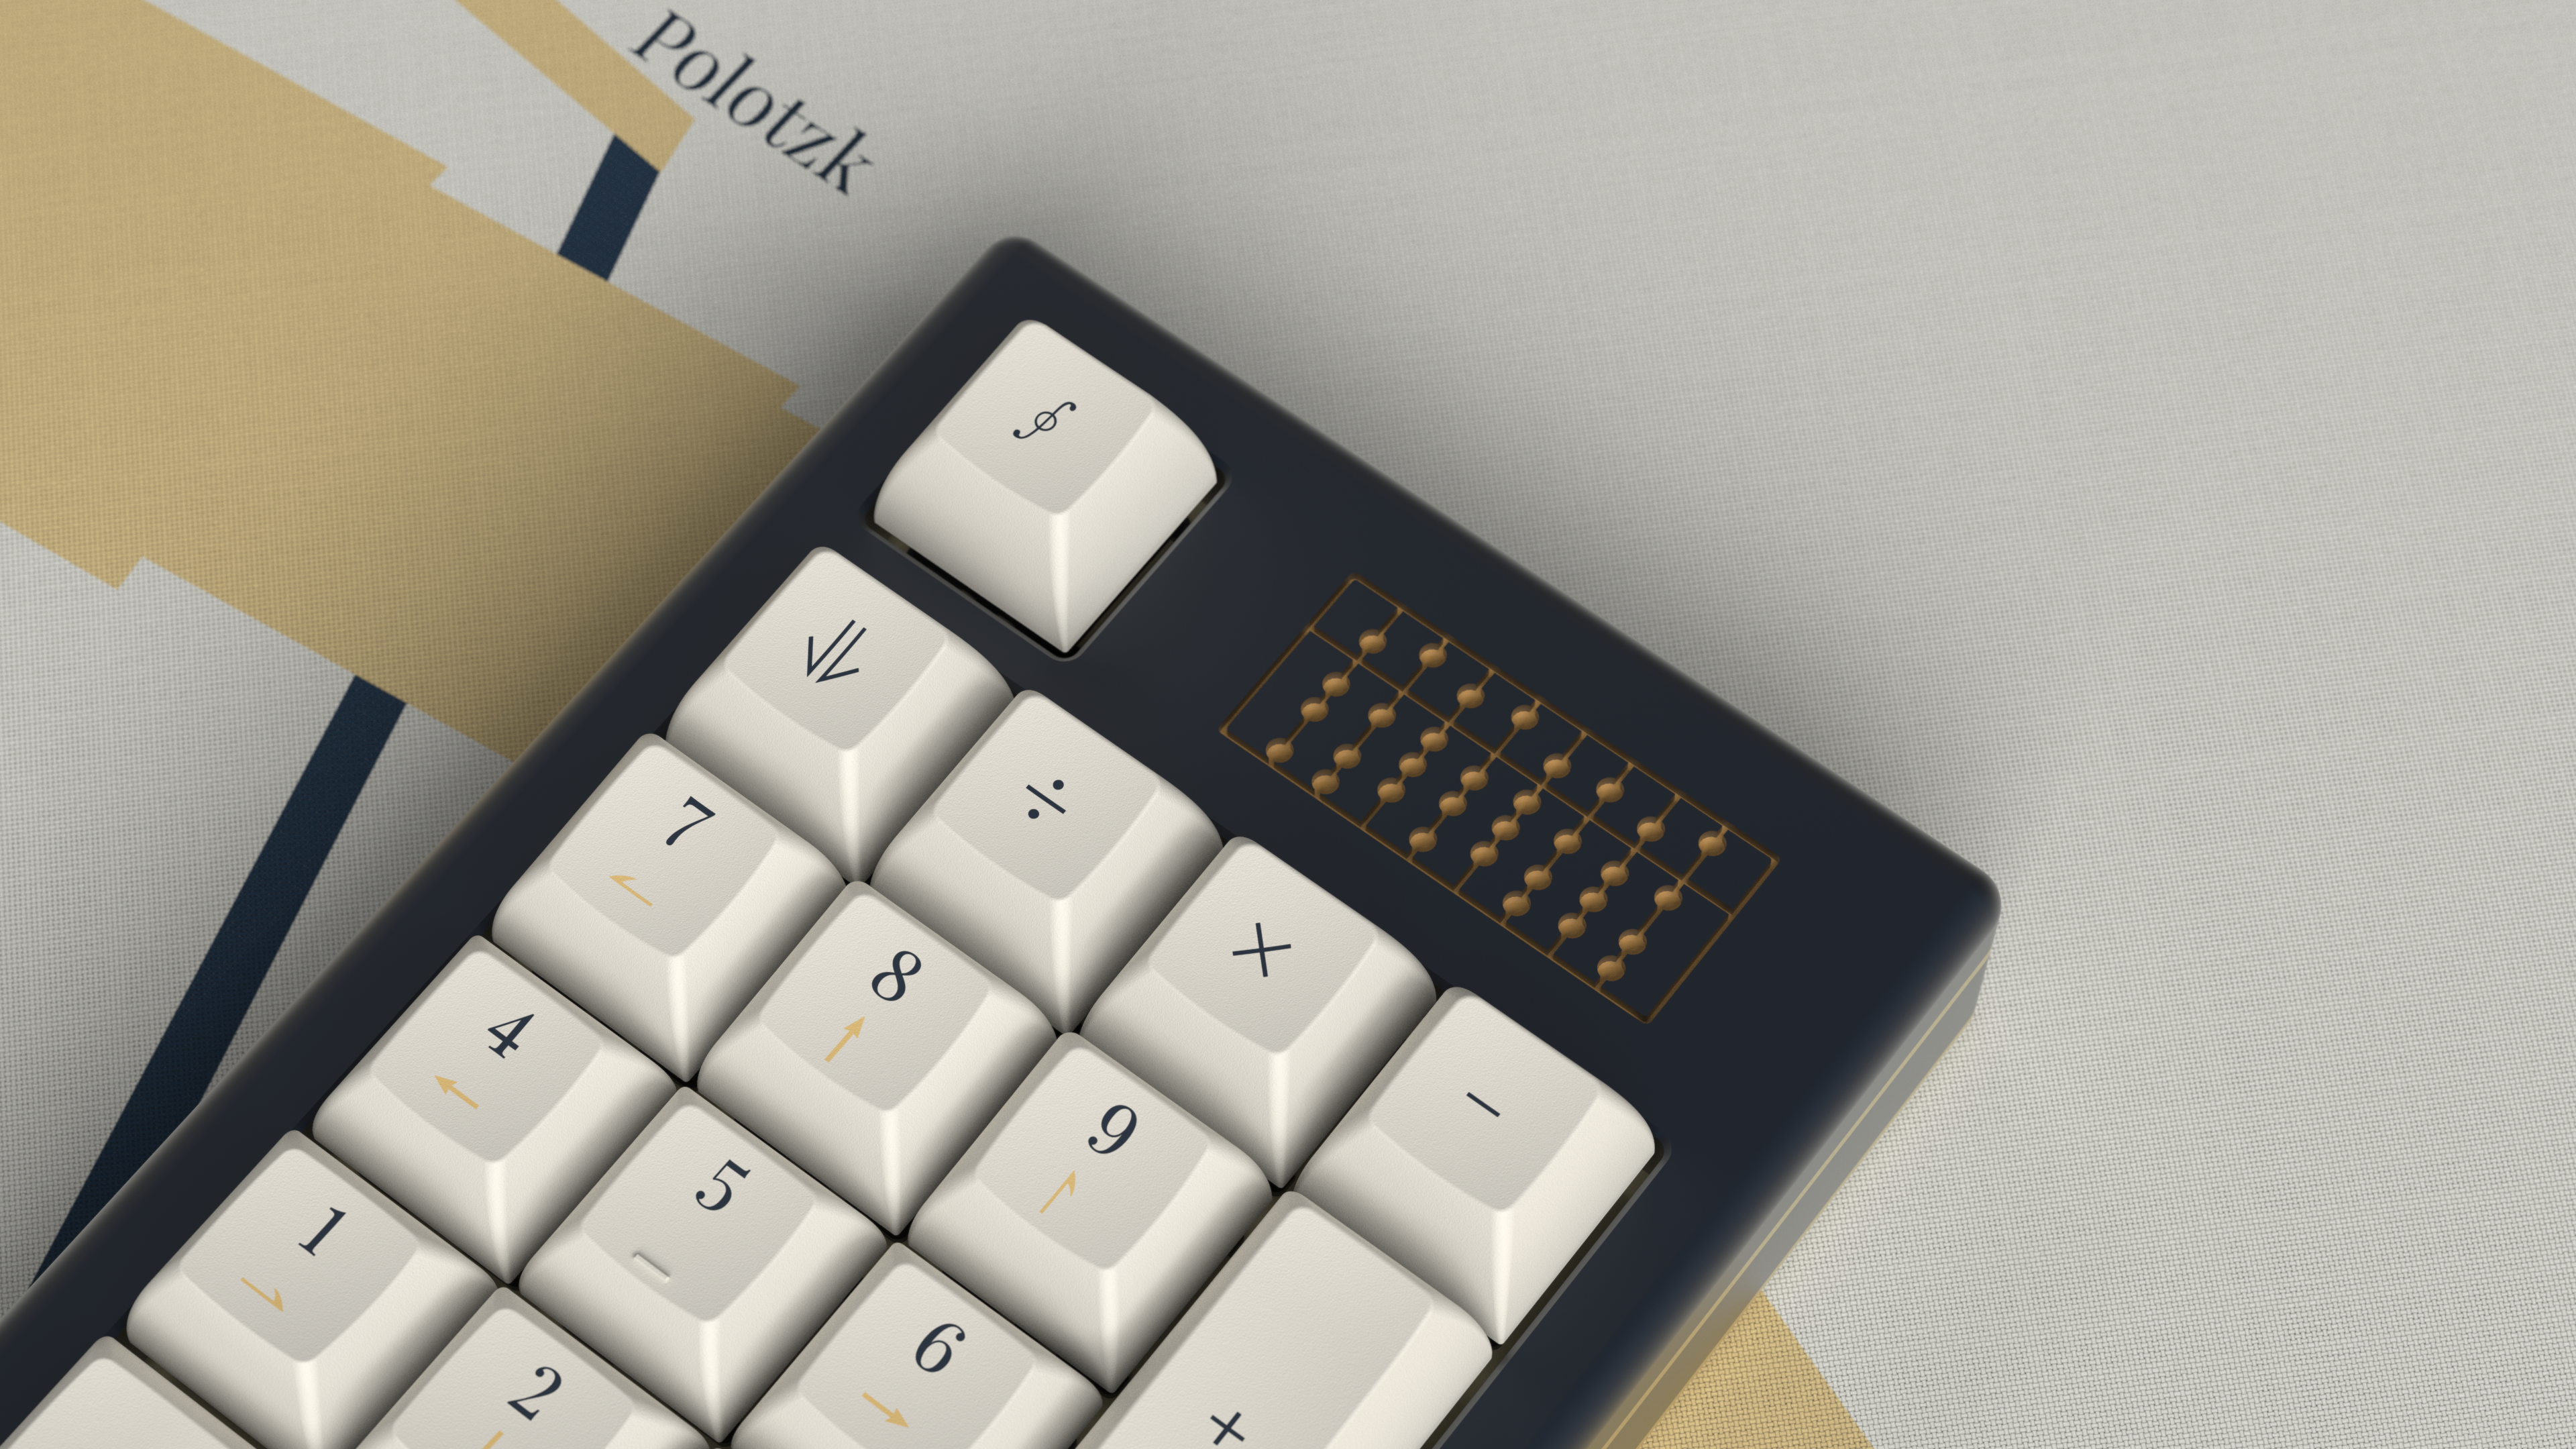 Austrian White Numpad kit on Abacus by SomeGreekGuy (unreleased). Render by manzel.